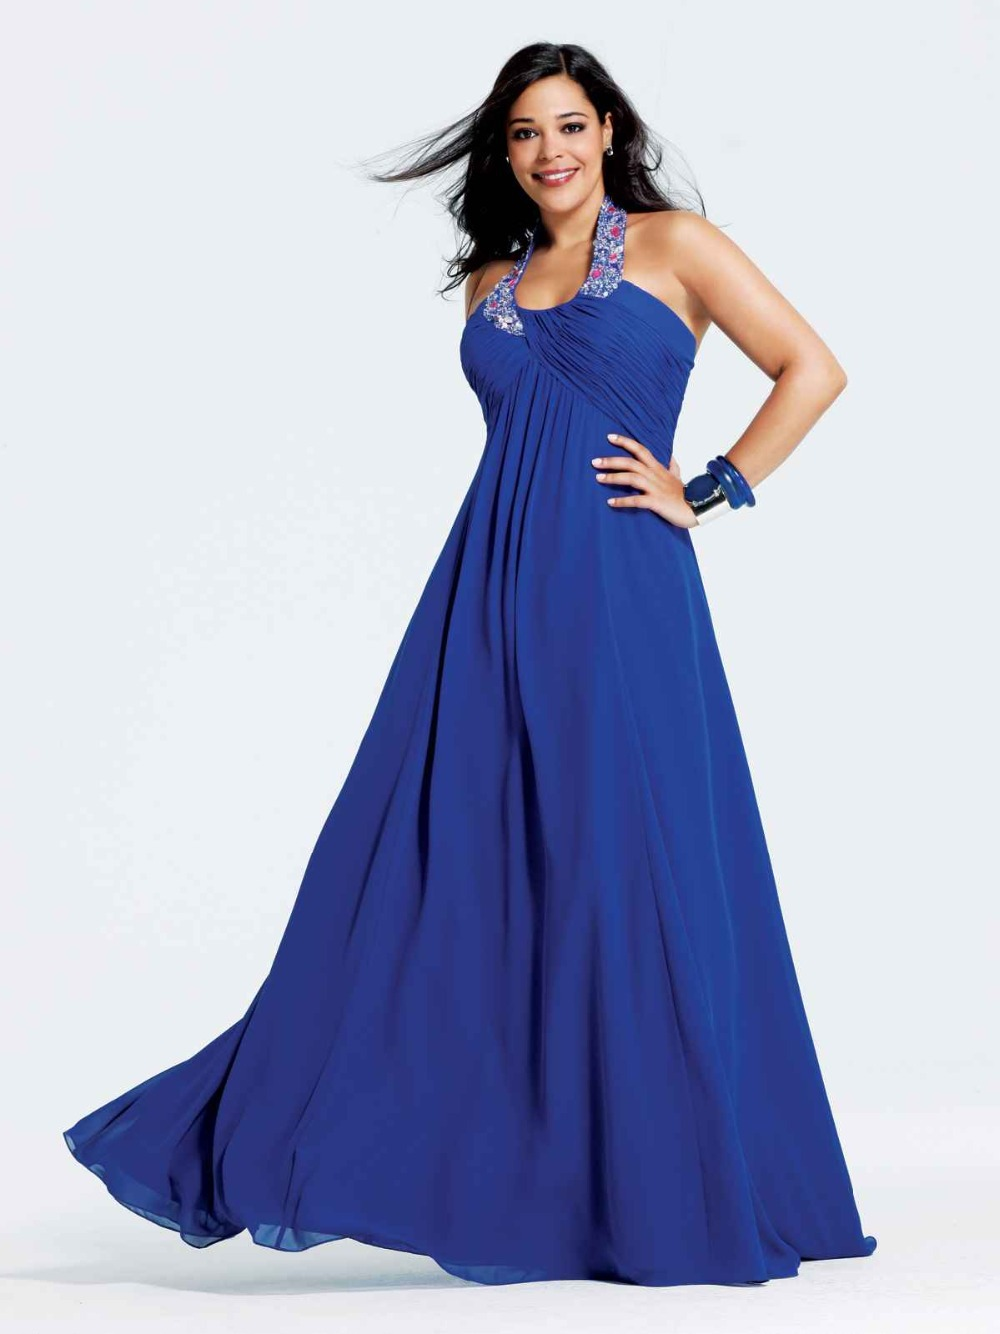 48142749588 Get Quotations · Plus Size Evening Dress Chiffon Ruched Royal Blue Party Dresses  Halter Empire Rhinestone Evening Gown Robe